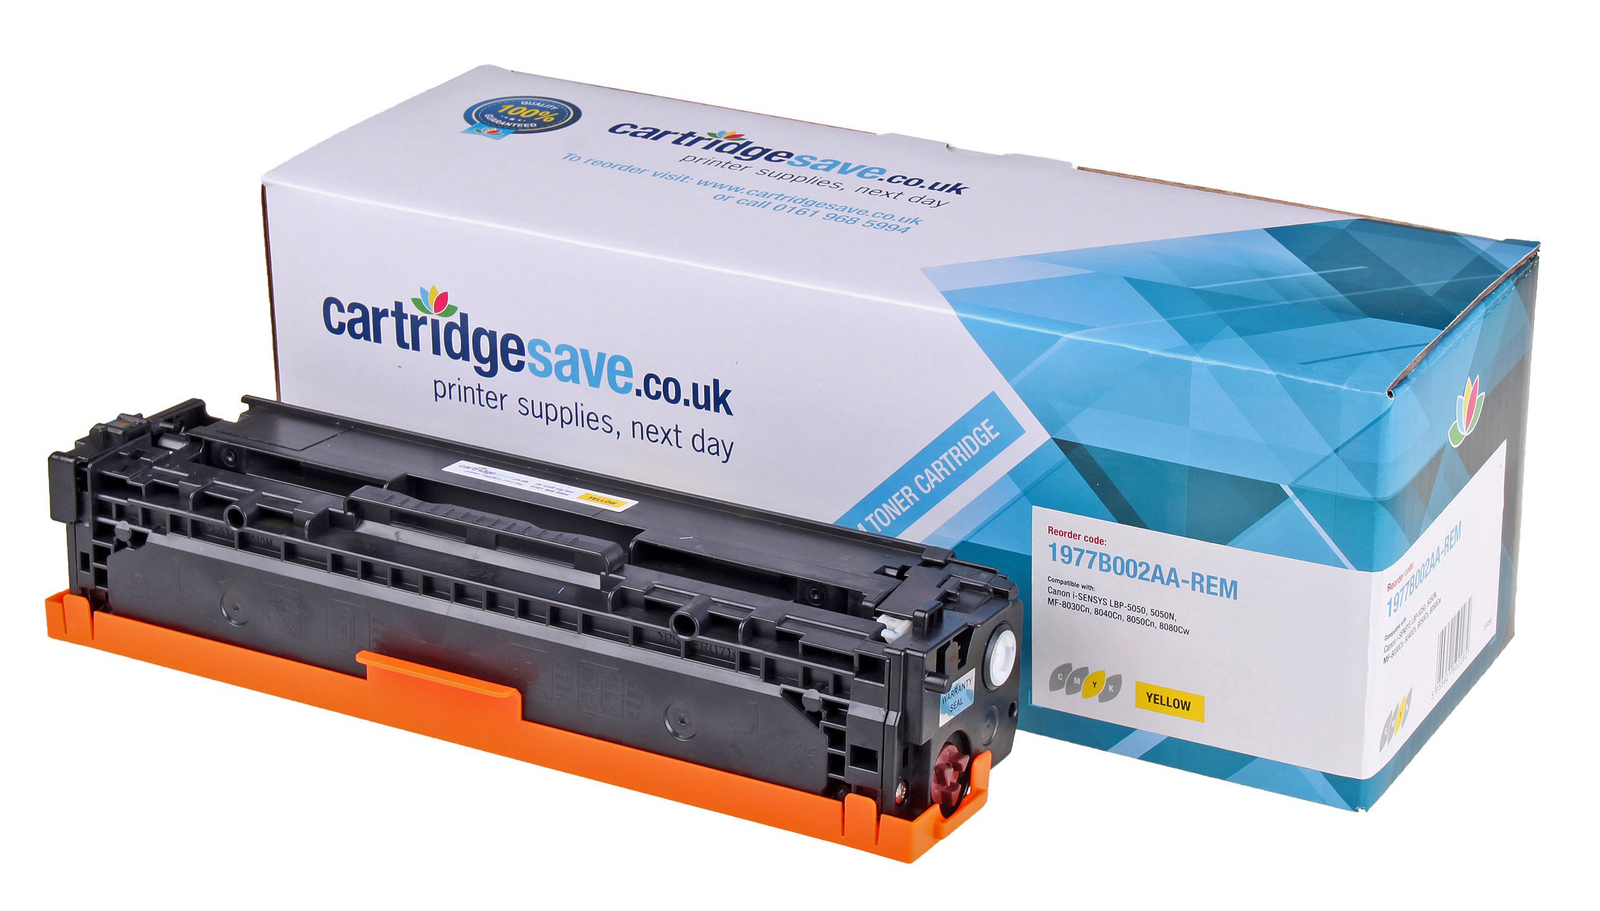 Compatible Yellow Canon 716 Toner Cartridge (Replaces Canon 1977B002AA Laser Printer Cartridge)